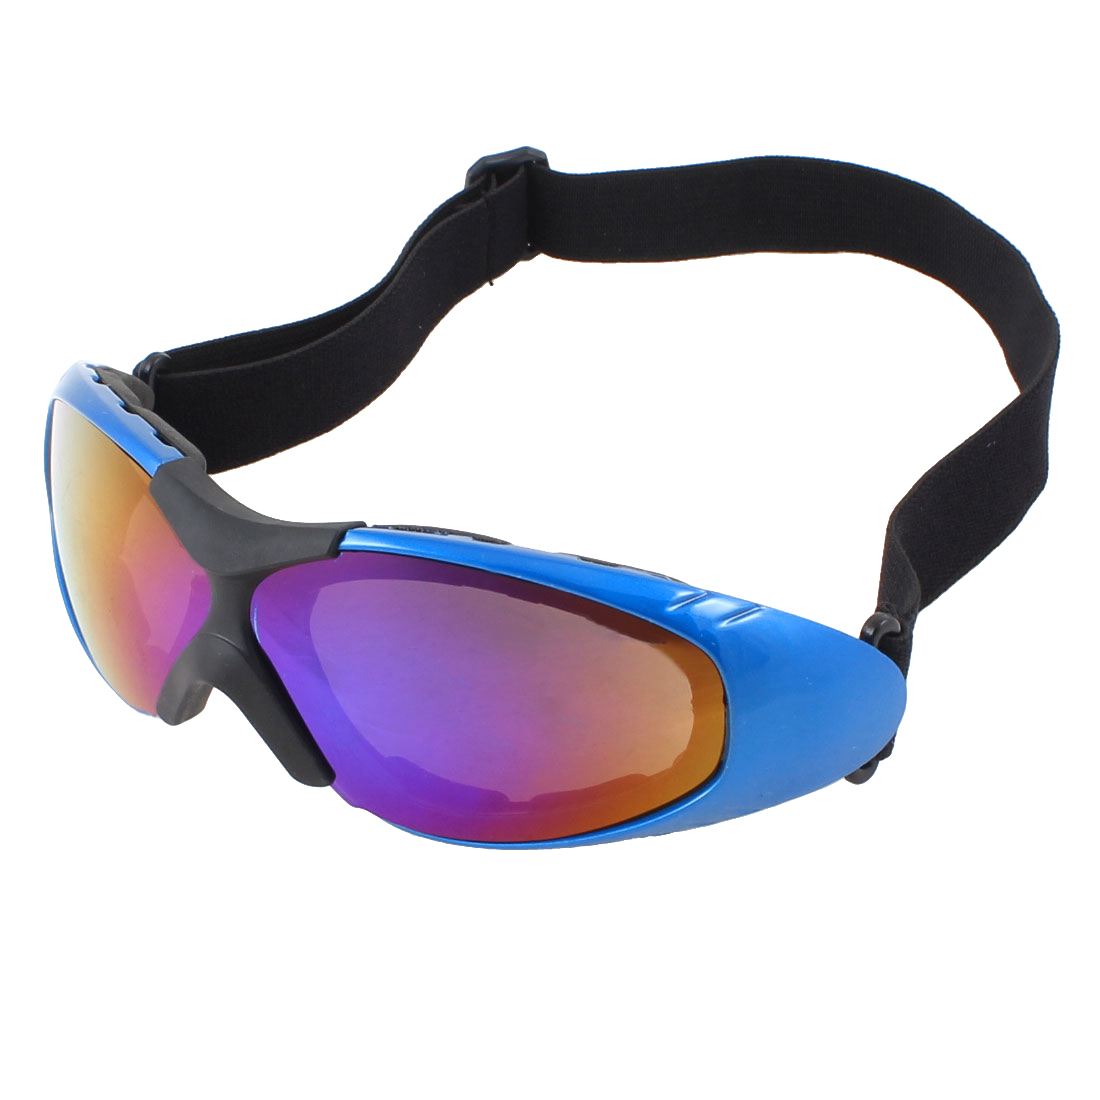 Adults Full Rim Colorful Lens Motorcycle Safety Skiing Snow Sports Goggles Glasses